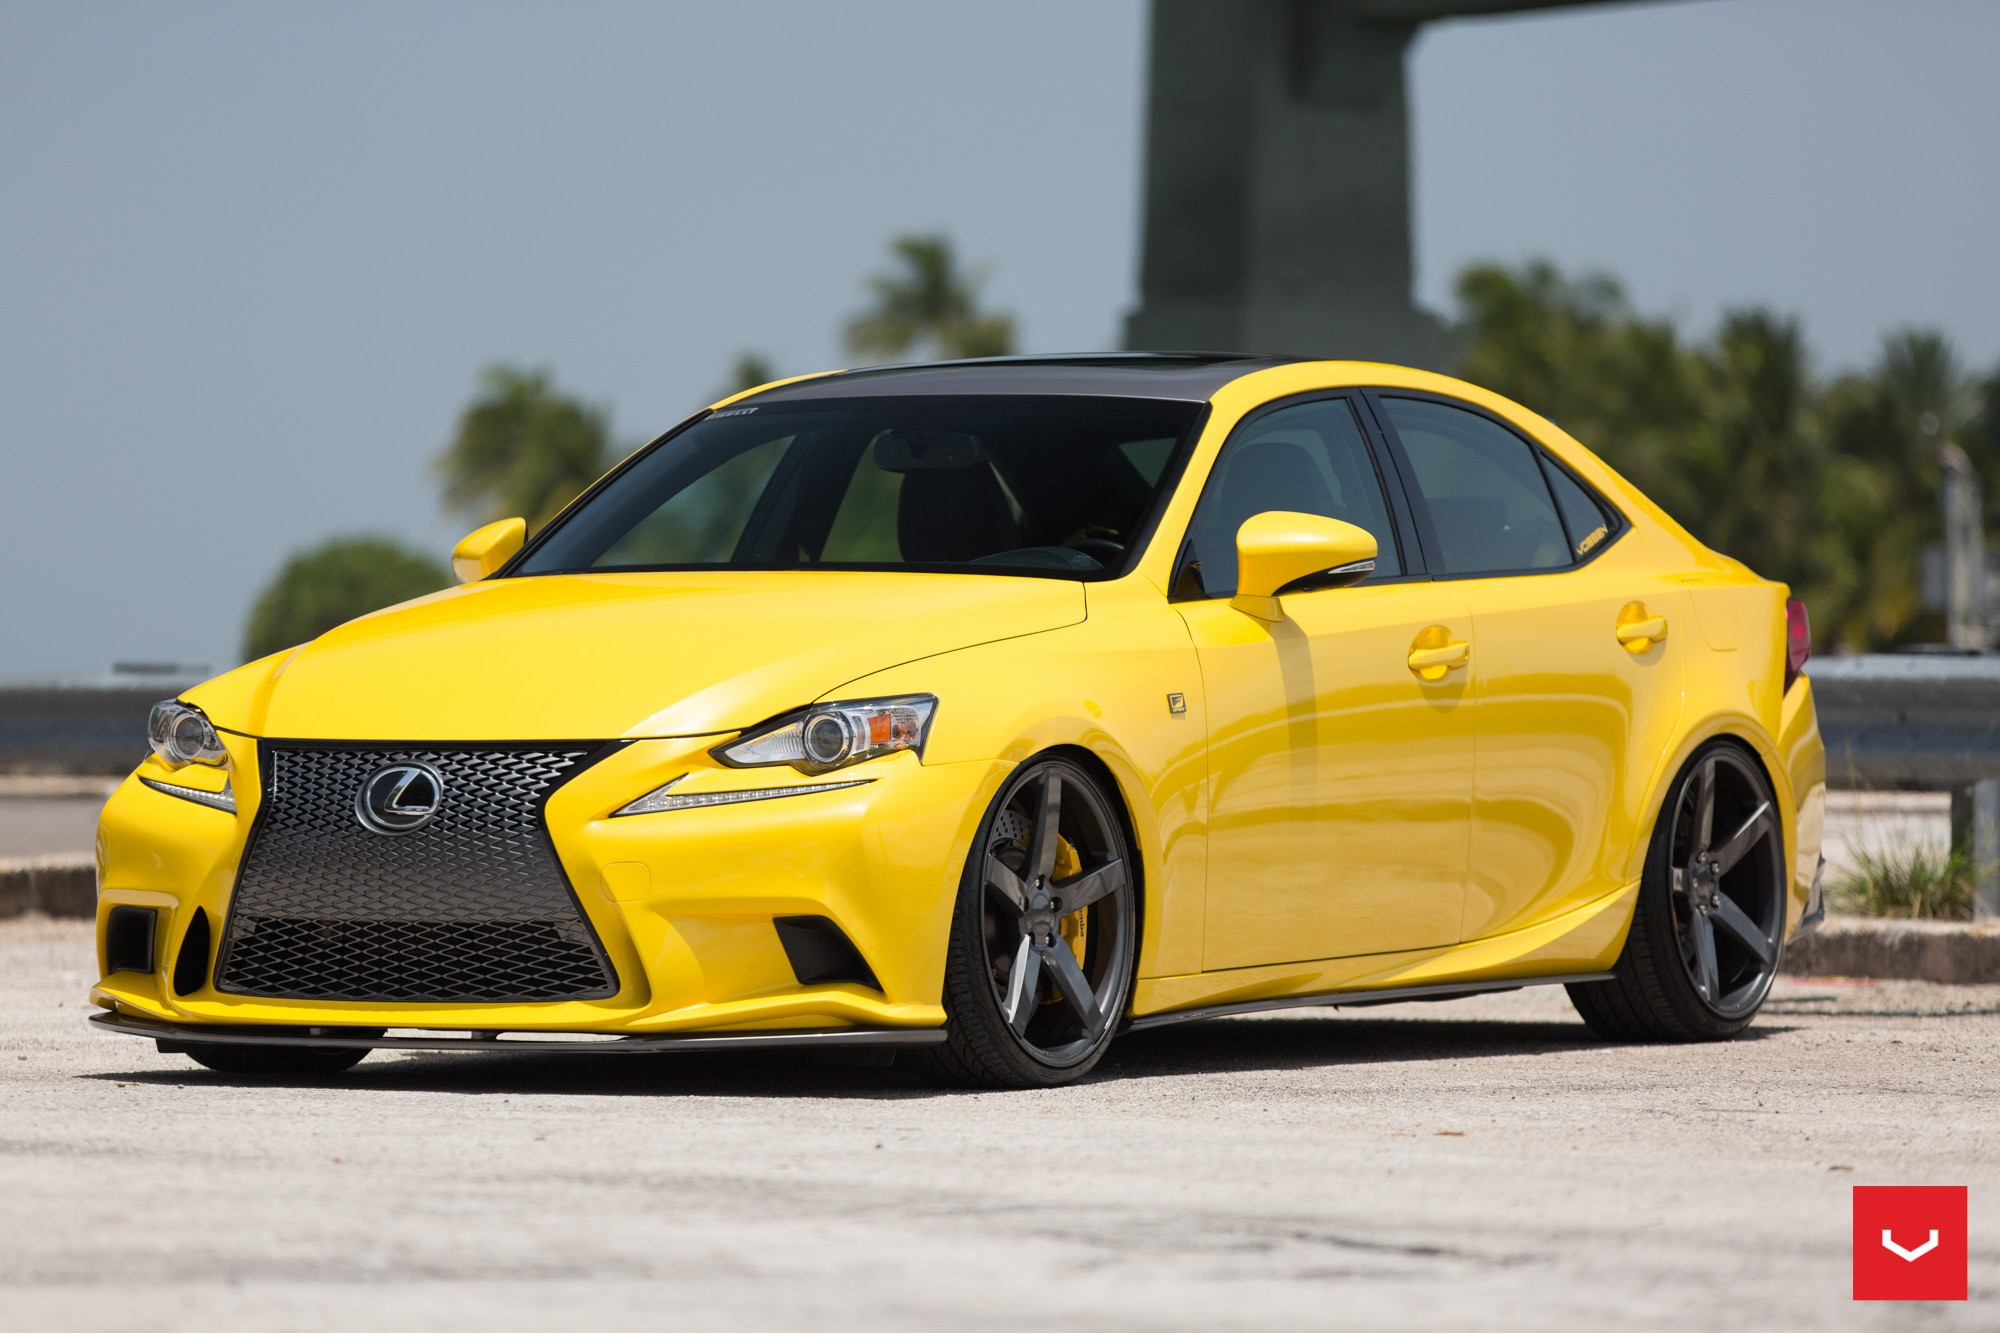 Lfa Yellow Lexus Is 350 Sits On Vossen Wheels Autoevolution